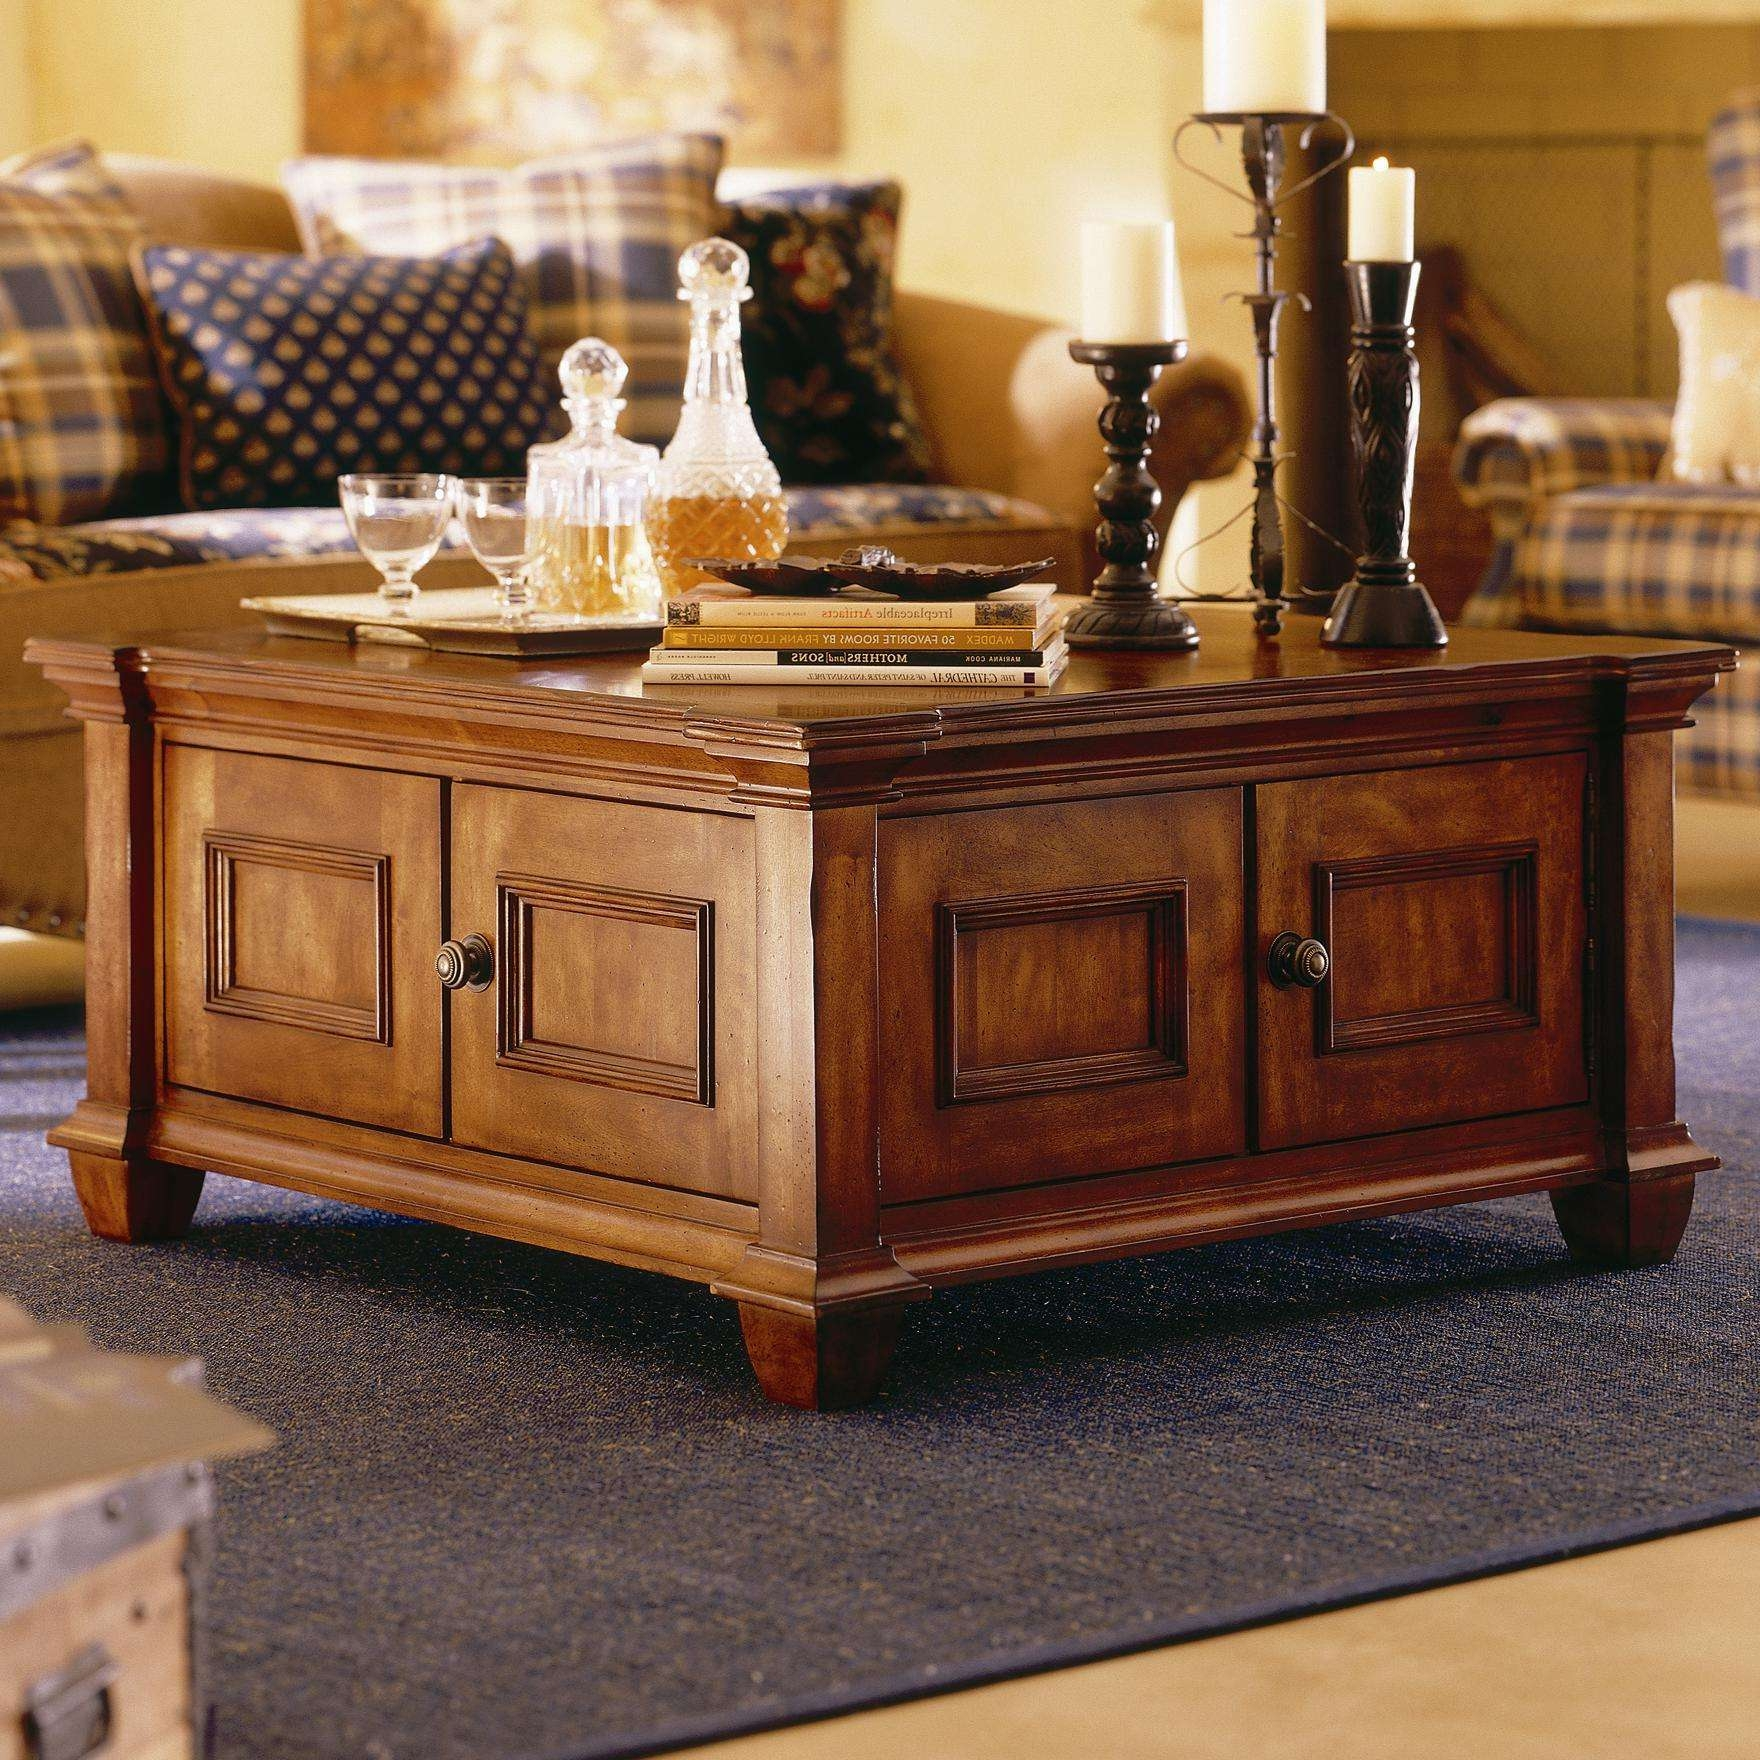 Large Square Coffee Tables With Drawers • Drawer Furniture Regarding Most Recently Released Large Square Wood Coffee Tables (View 12 of 20)